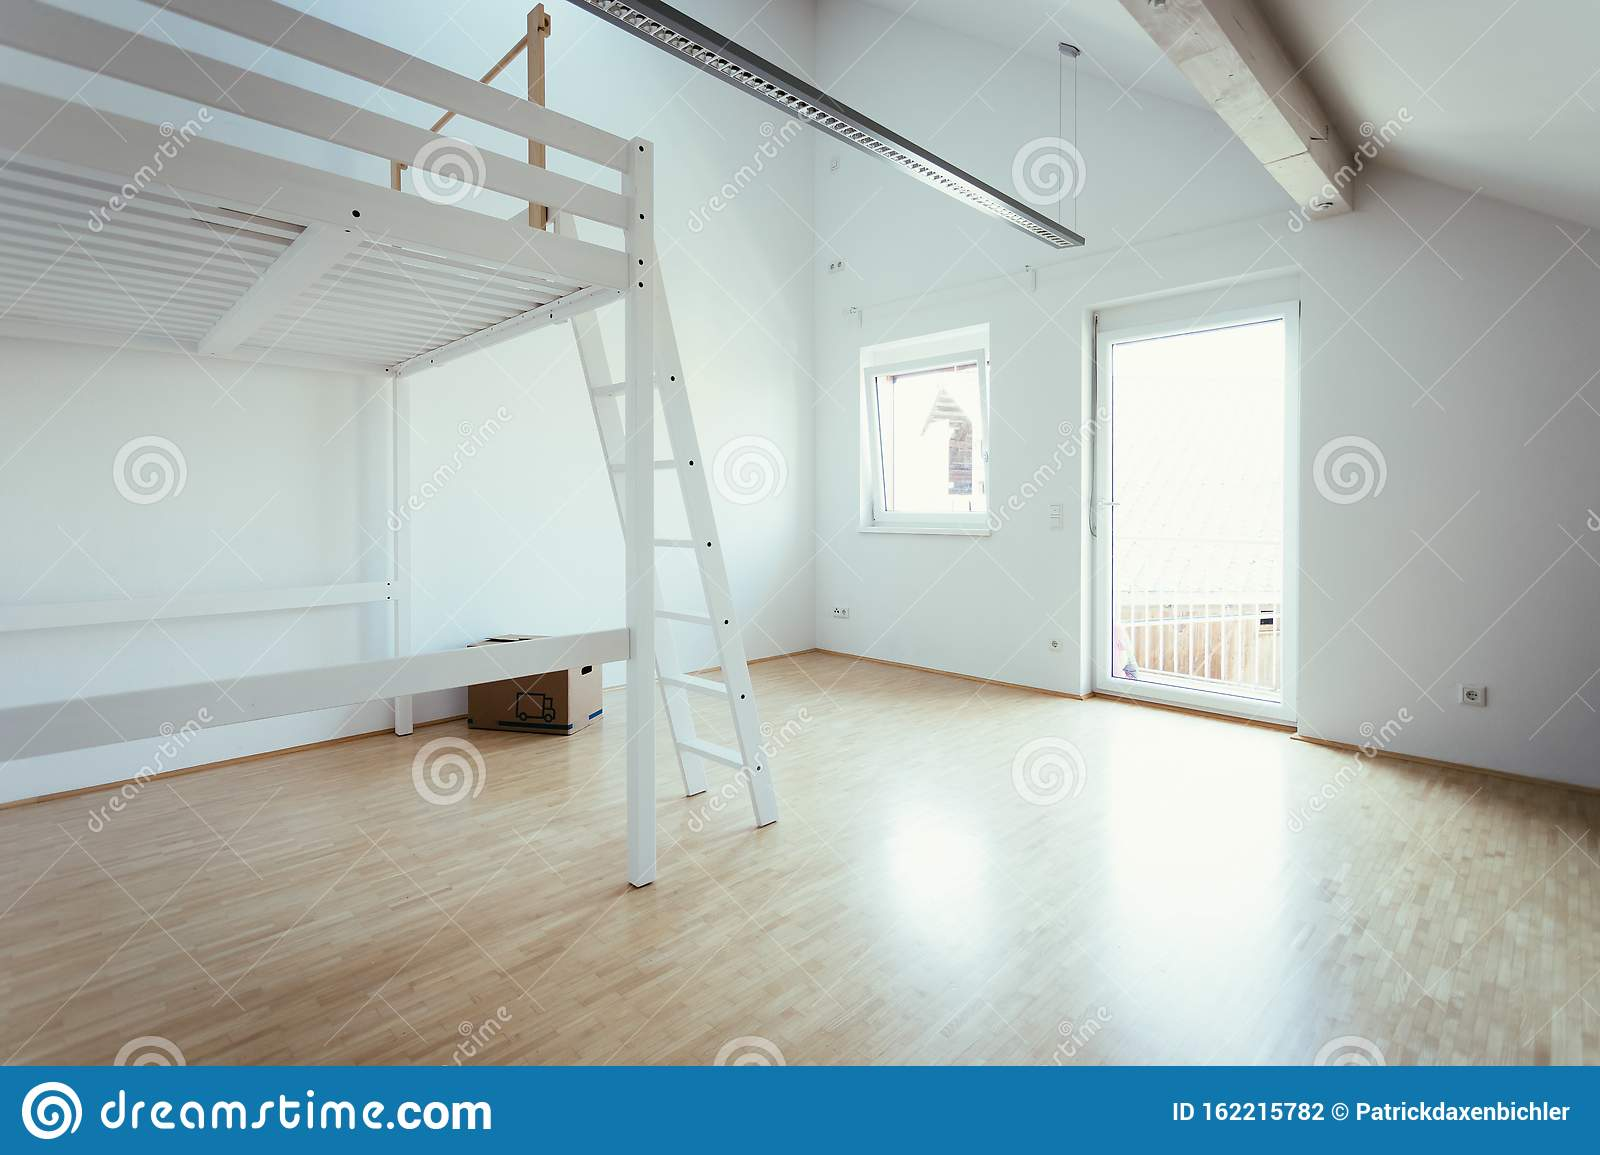 Picture of: White Modern Bunk Bed In Bright Room Tiny Living Concept Stock Photo Image Of Concept Room 162215782